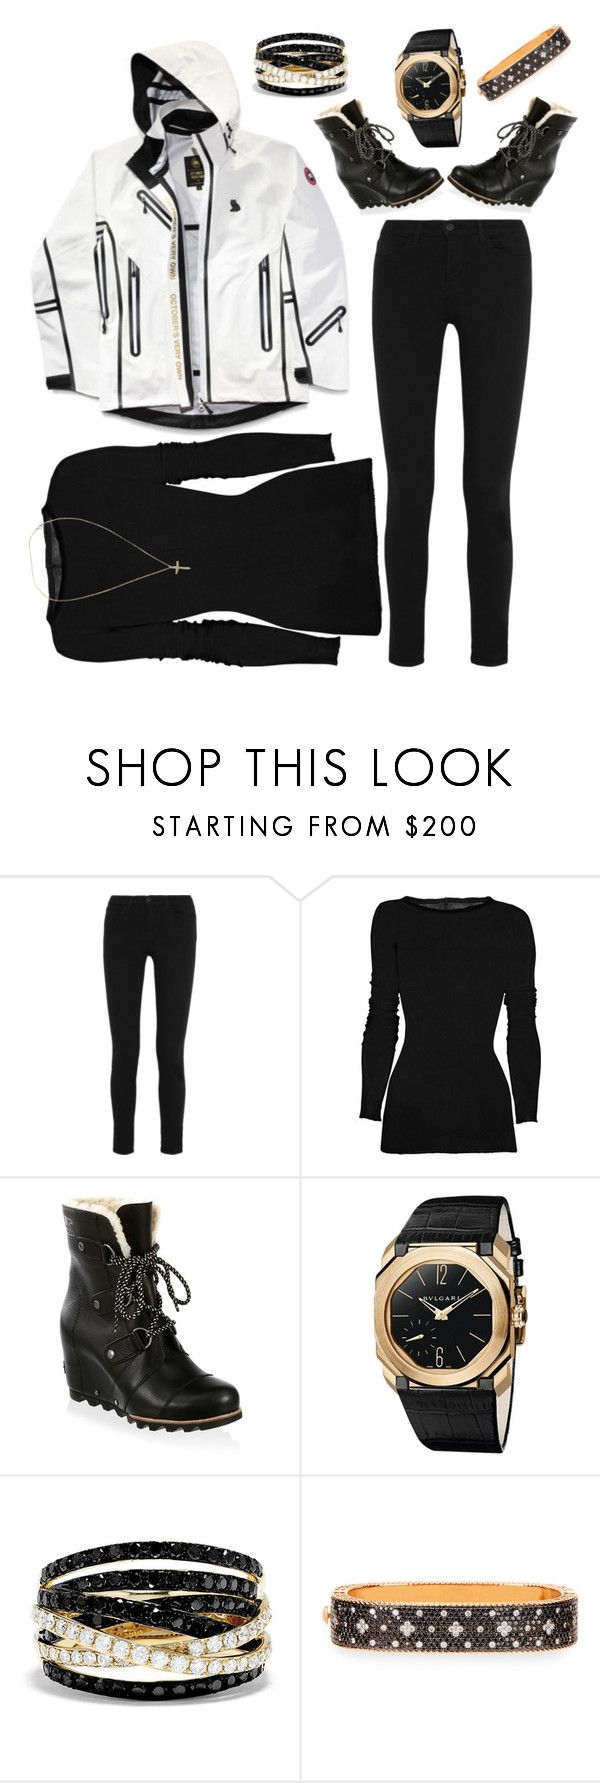 """Look alive, Look alive"" by southern-mom ❤ liked on Polyvore featuring Canada Goose, J Brand, Rick Owens, SOREL, Bulgari, Effy Jewelry, Roberto Coin and Tiffany & Co."